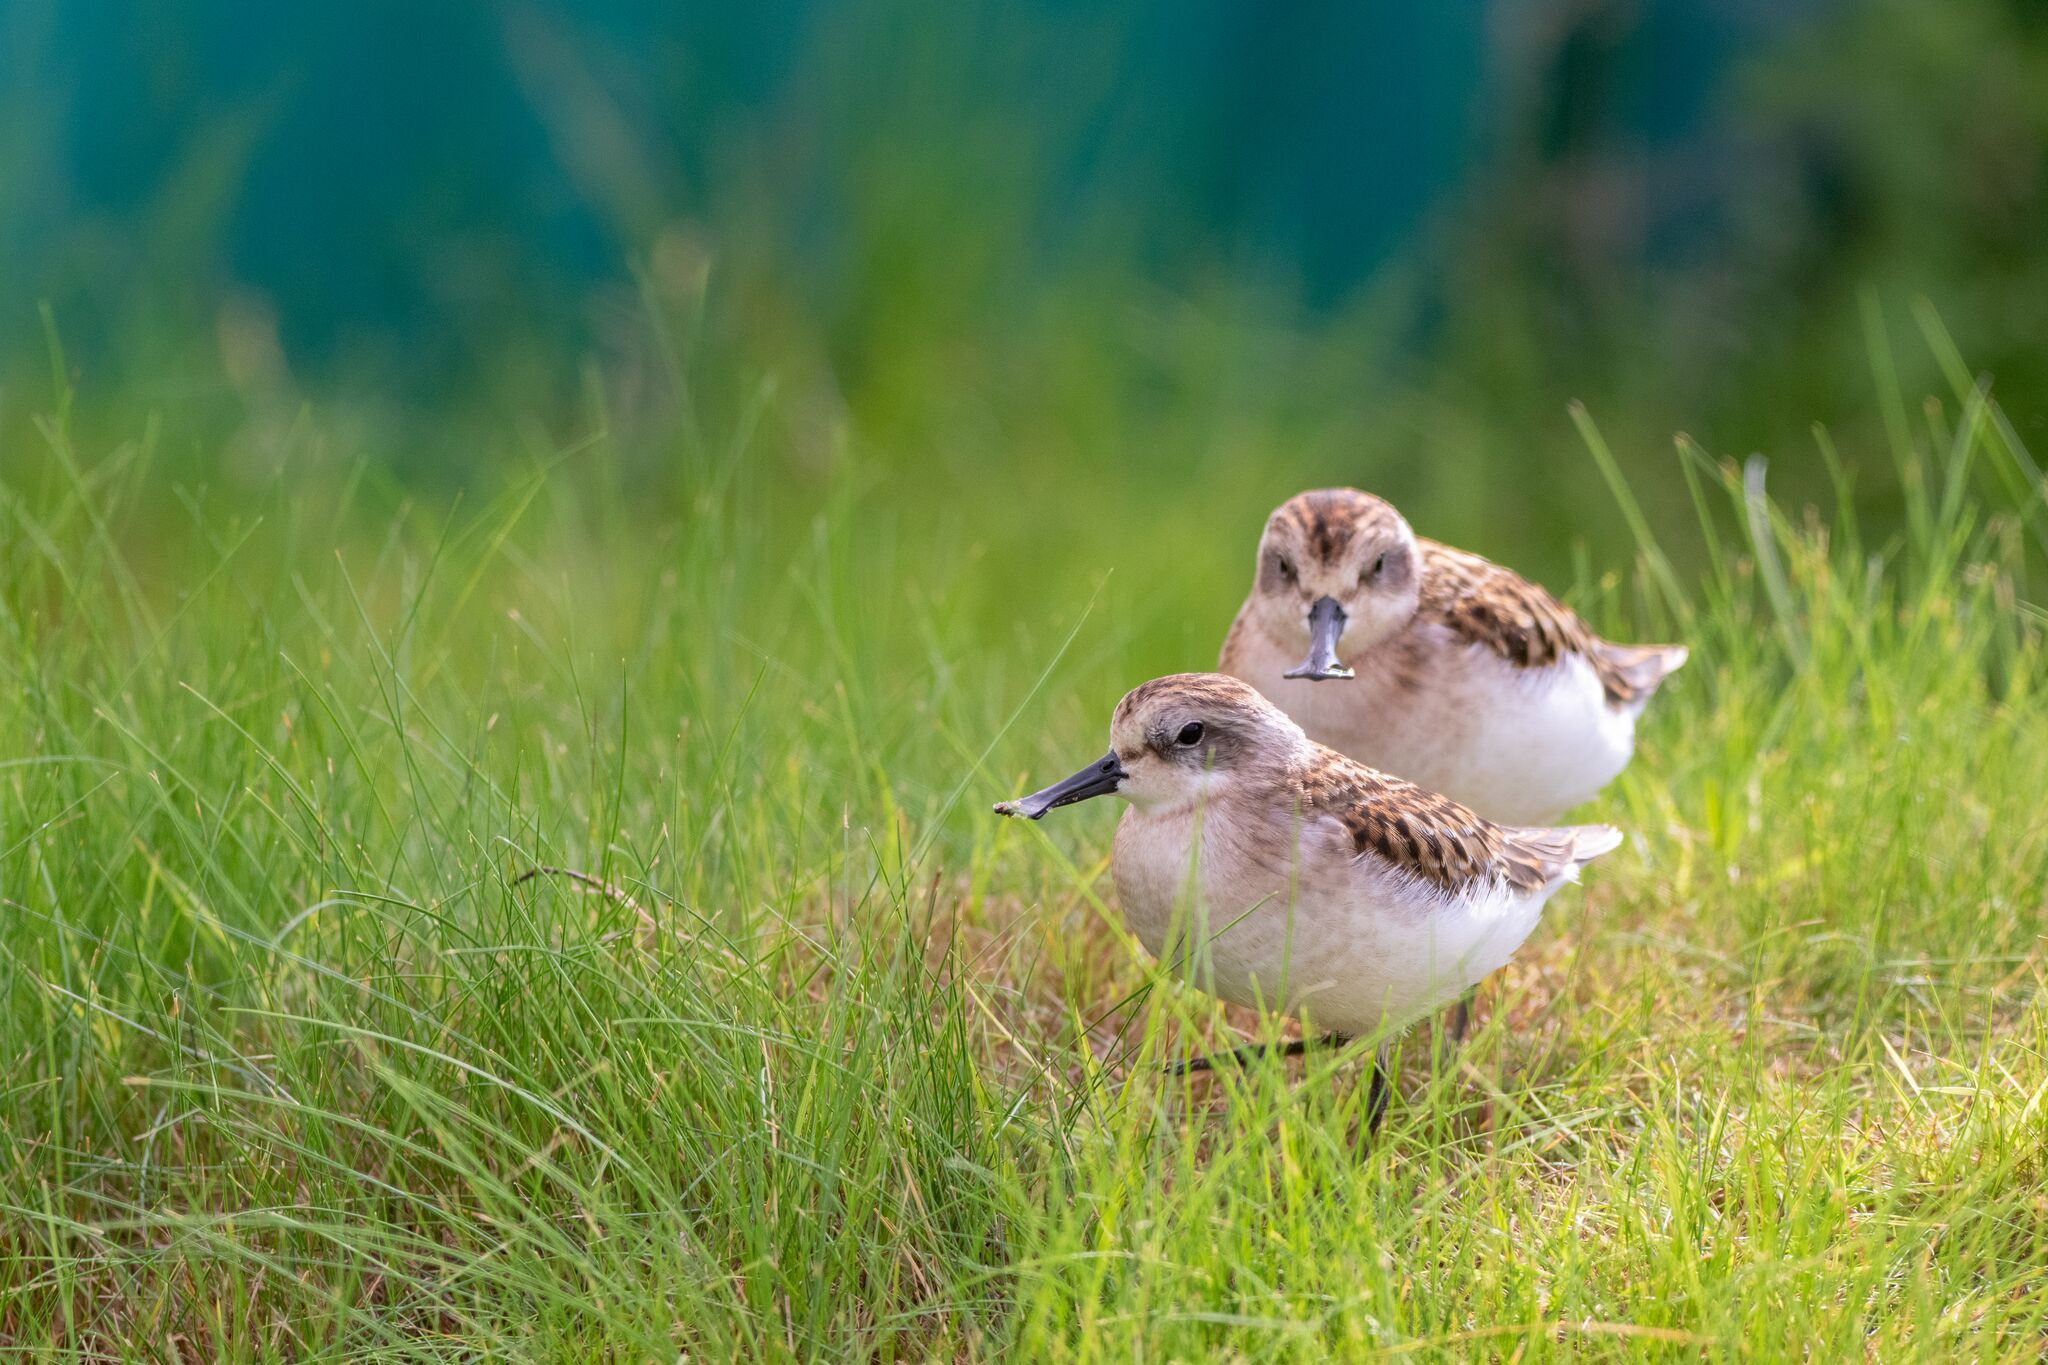 Fresh hope for spoon-billed sandpipers after chicks hatch